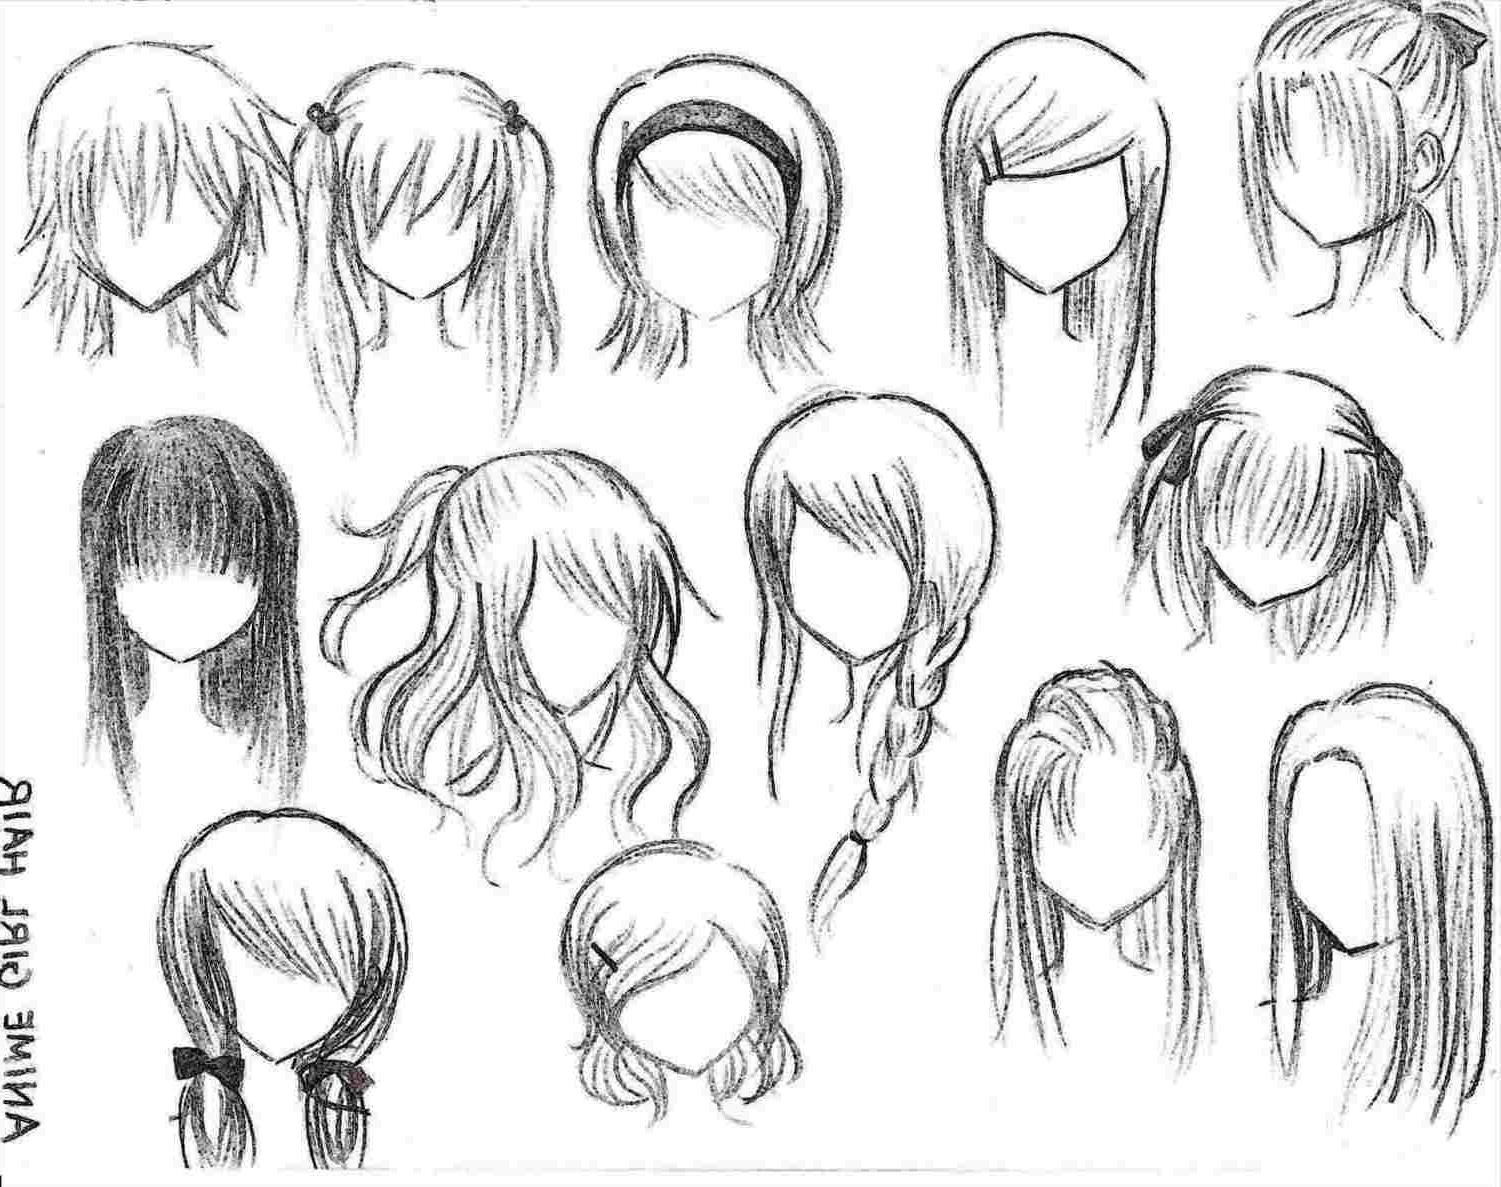 how to draw cute anime how to draw cute school girl anime anime character cute anime draw to how